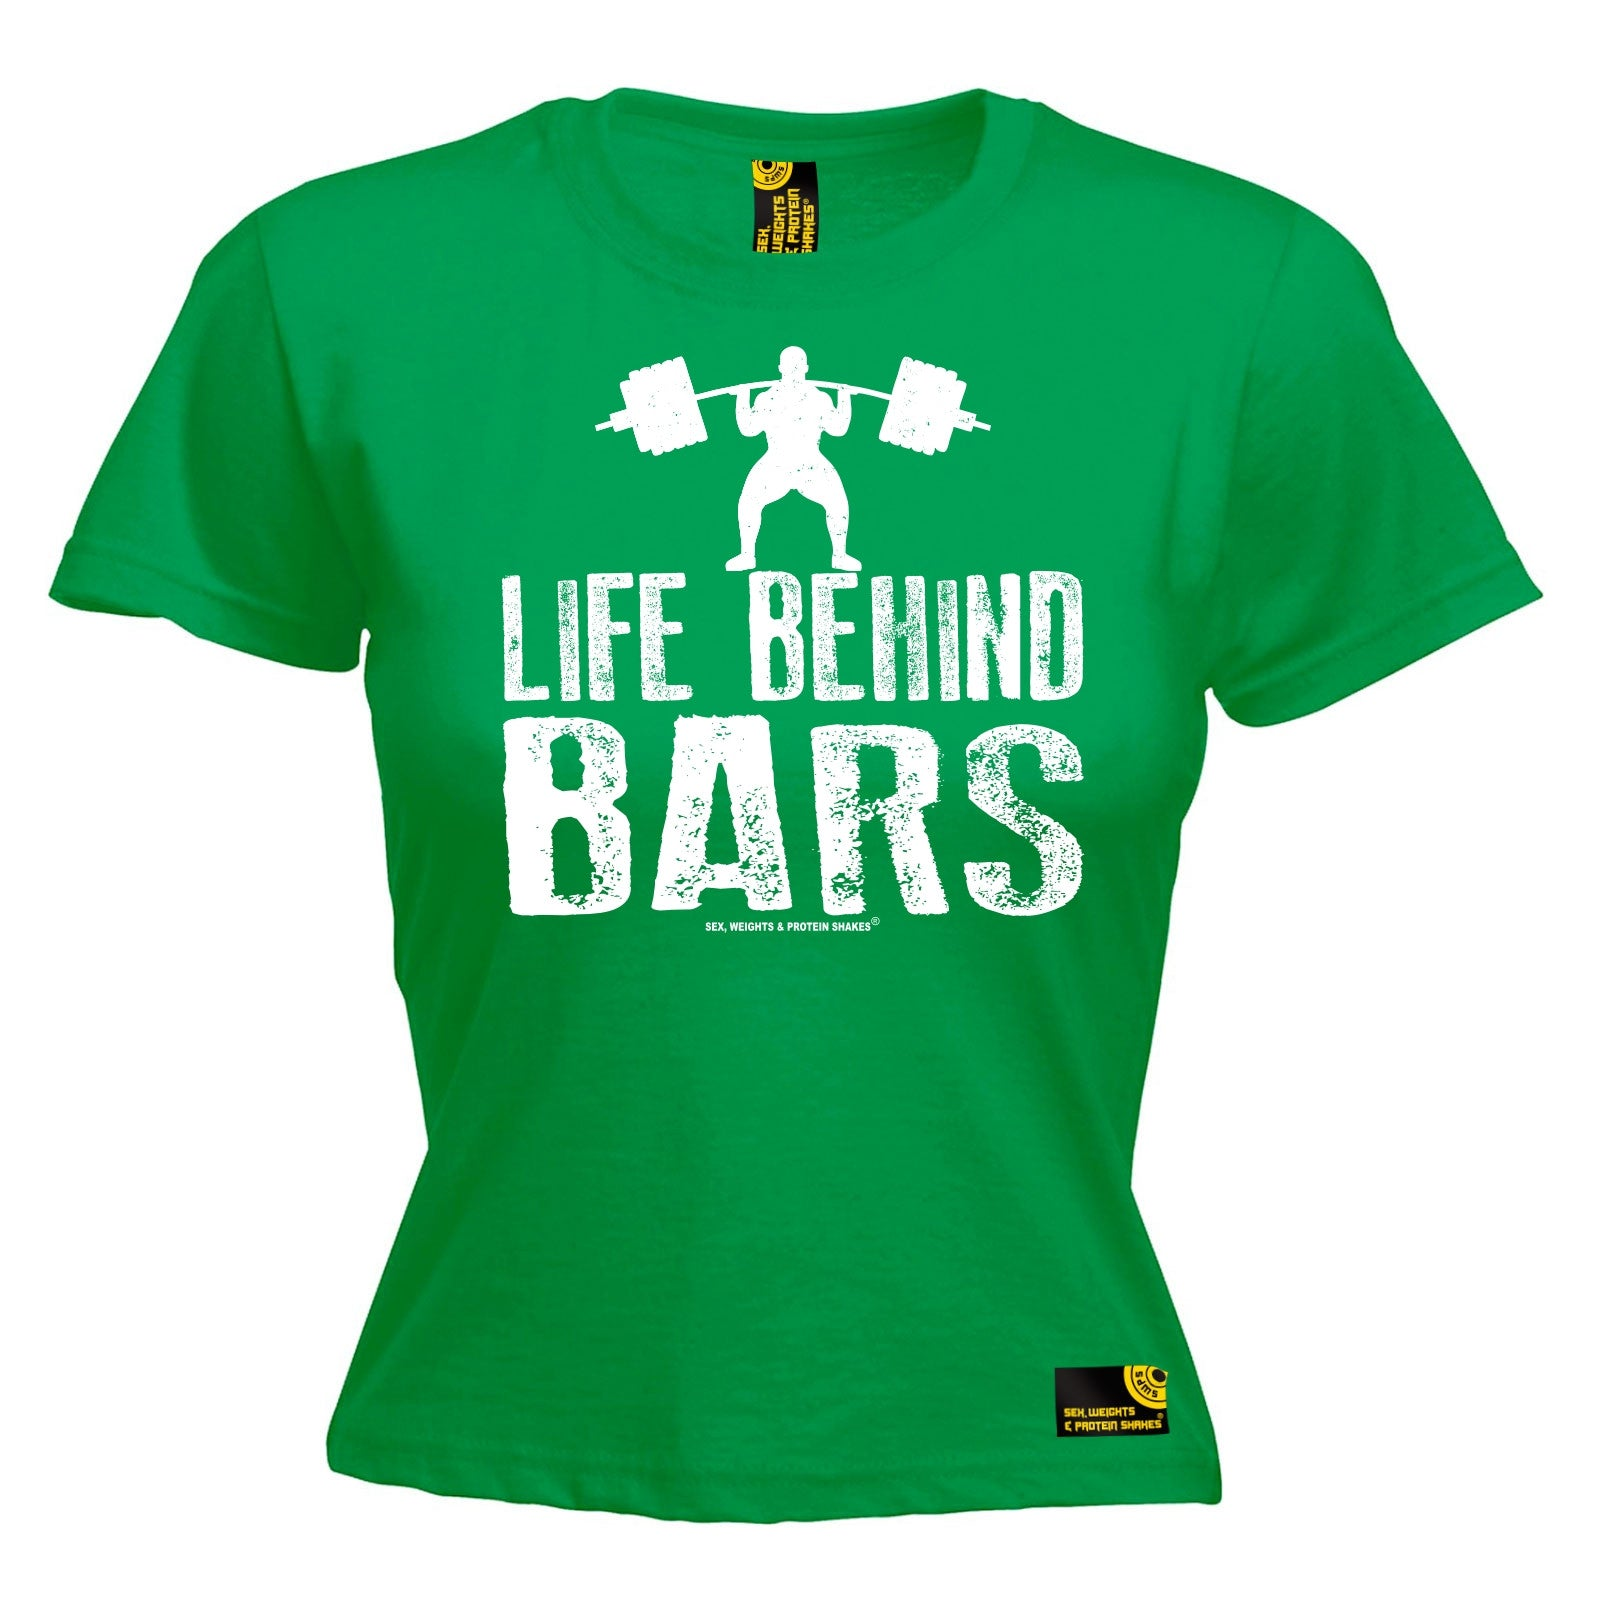 956d60d0d Life Behind Bars ... Weight Lifting - FITTED T-SHIRT - Sex Weights ...